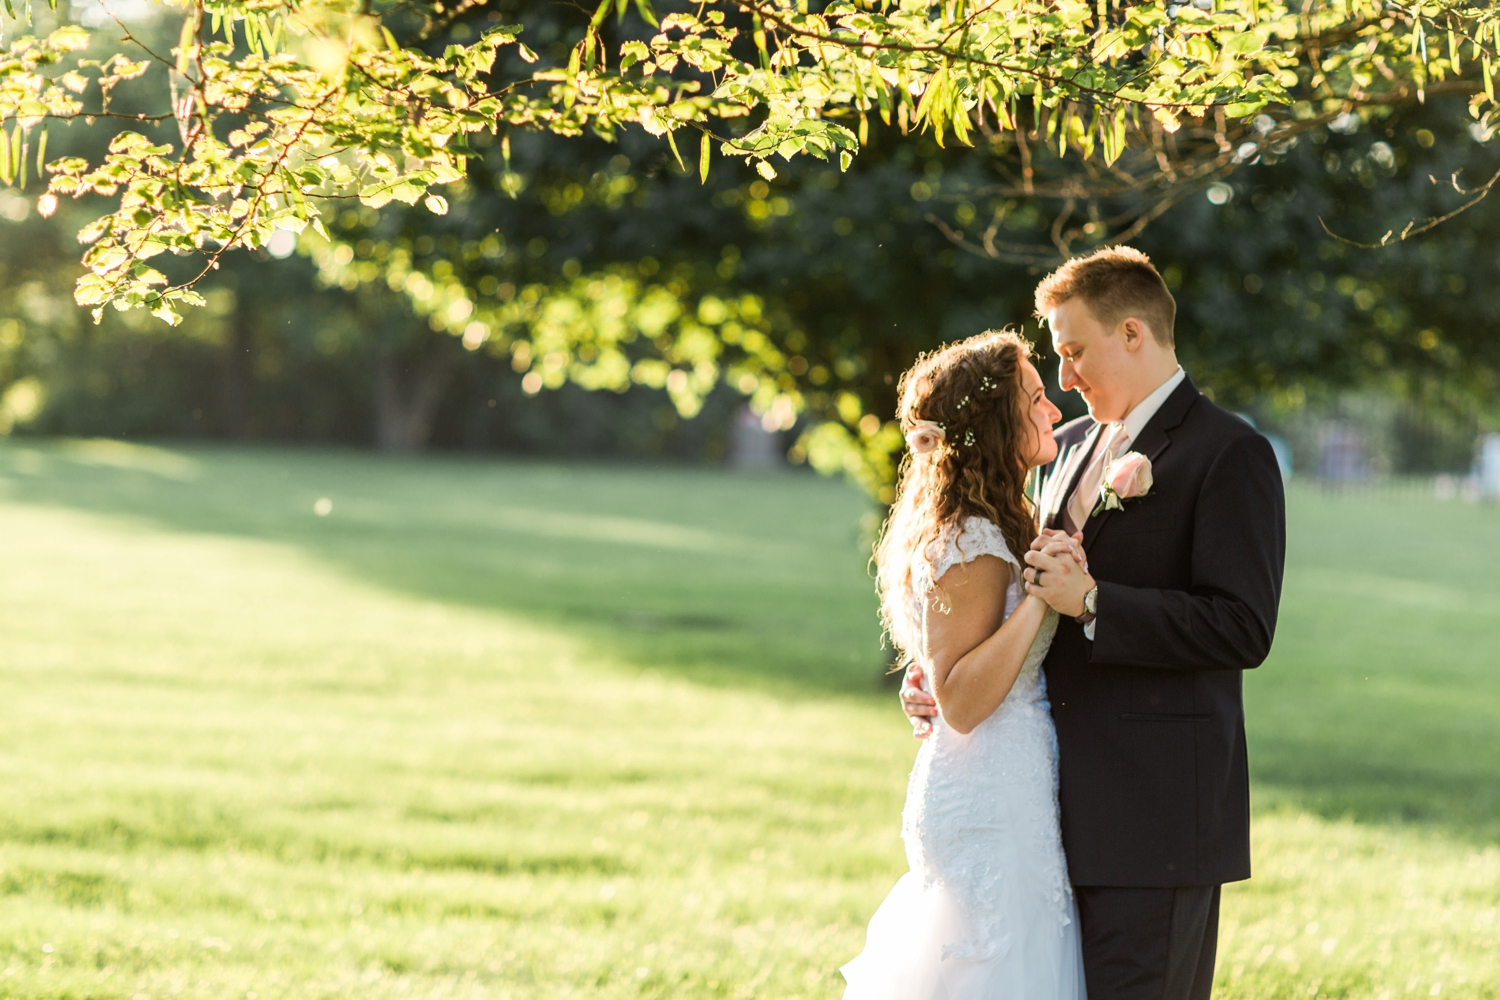 Community_Life_Center_Indianapolis_Indiana_Wedding_Photographer_Chloe_Luka_Photography_6994.jpg